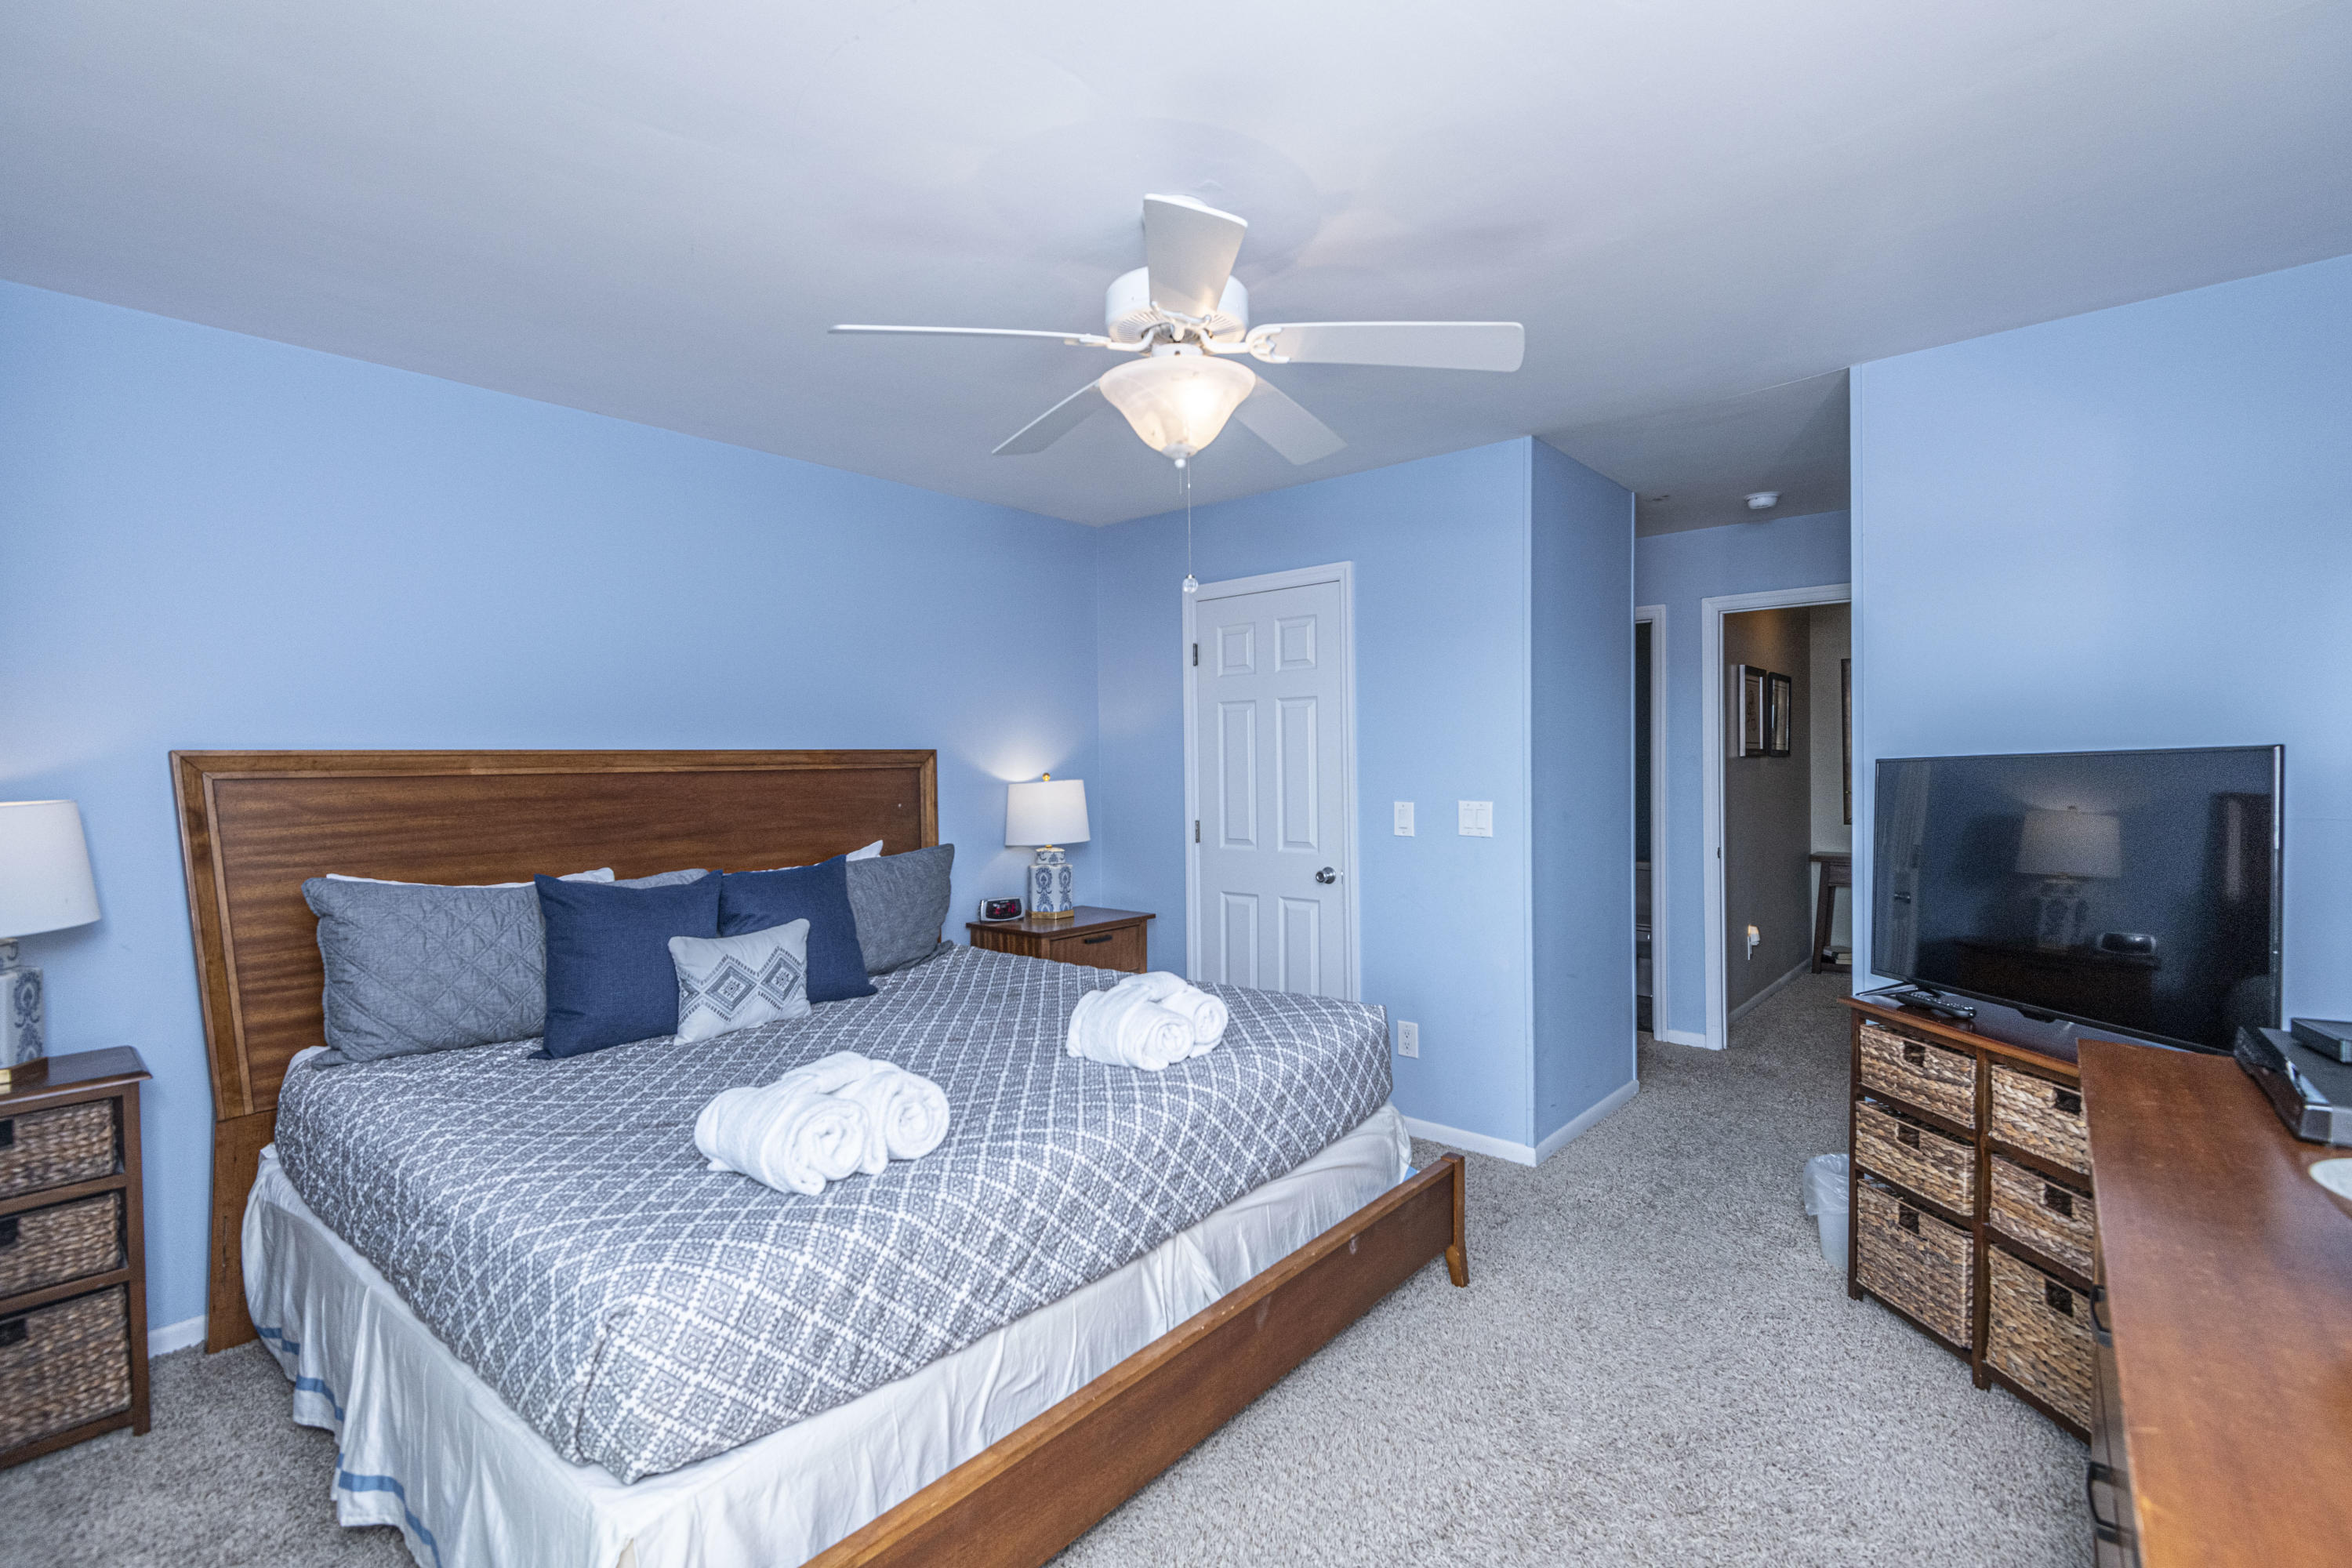 Mariners Cay Homes For Sale - 60 Mariners Cay, Folly Beach, SC - 14